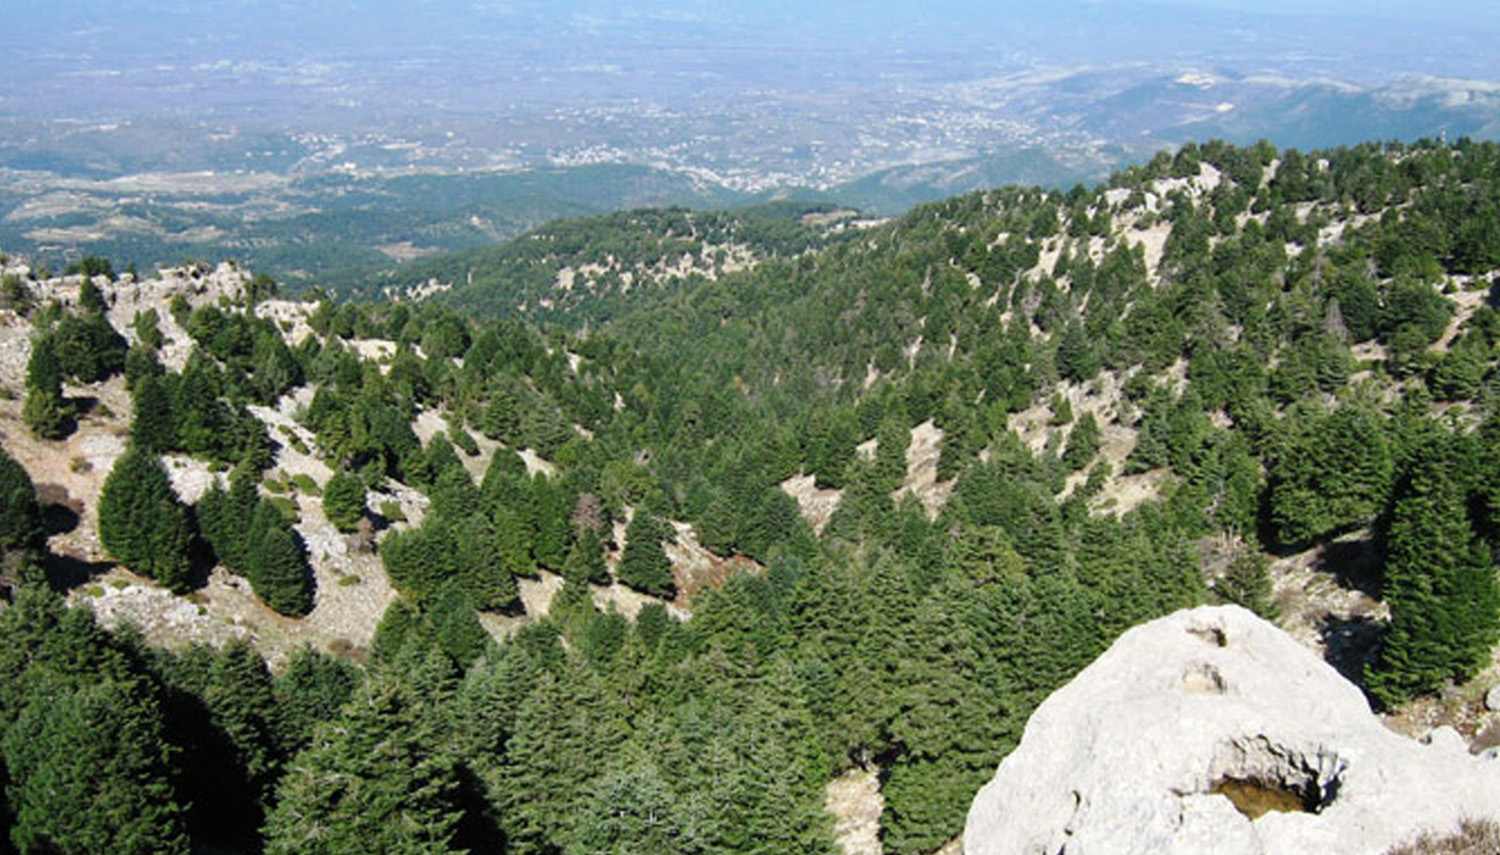 Community Engagement Action Plan to Sustain and Expand the Reforested Sites Across Lebanon